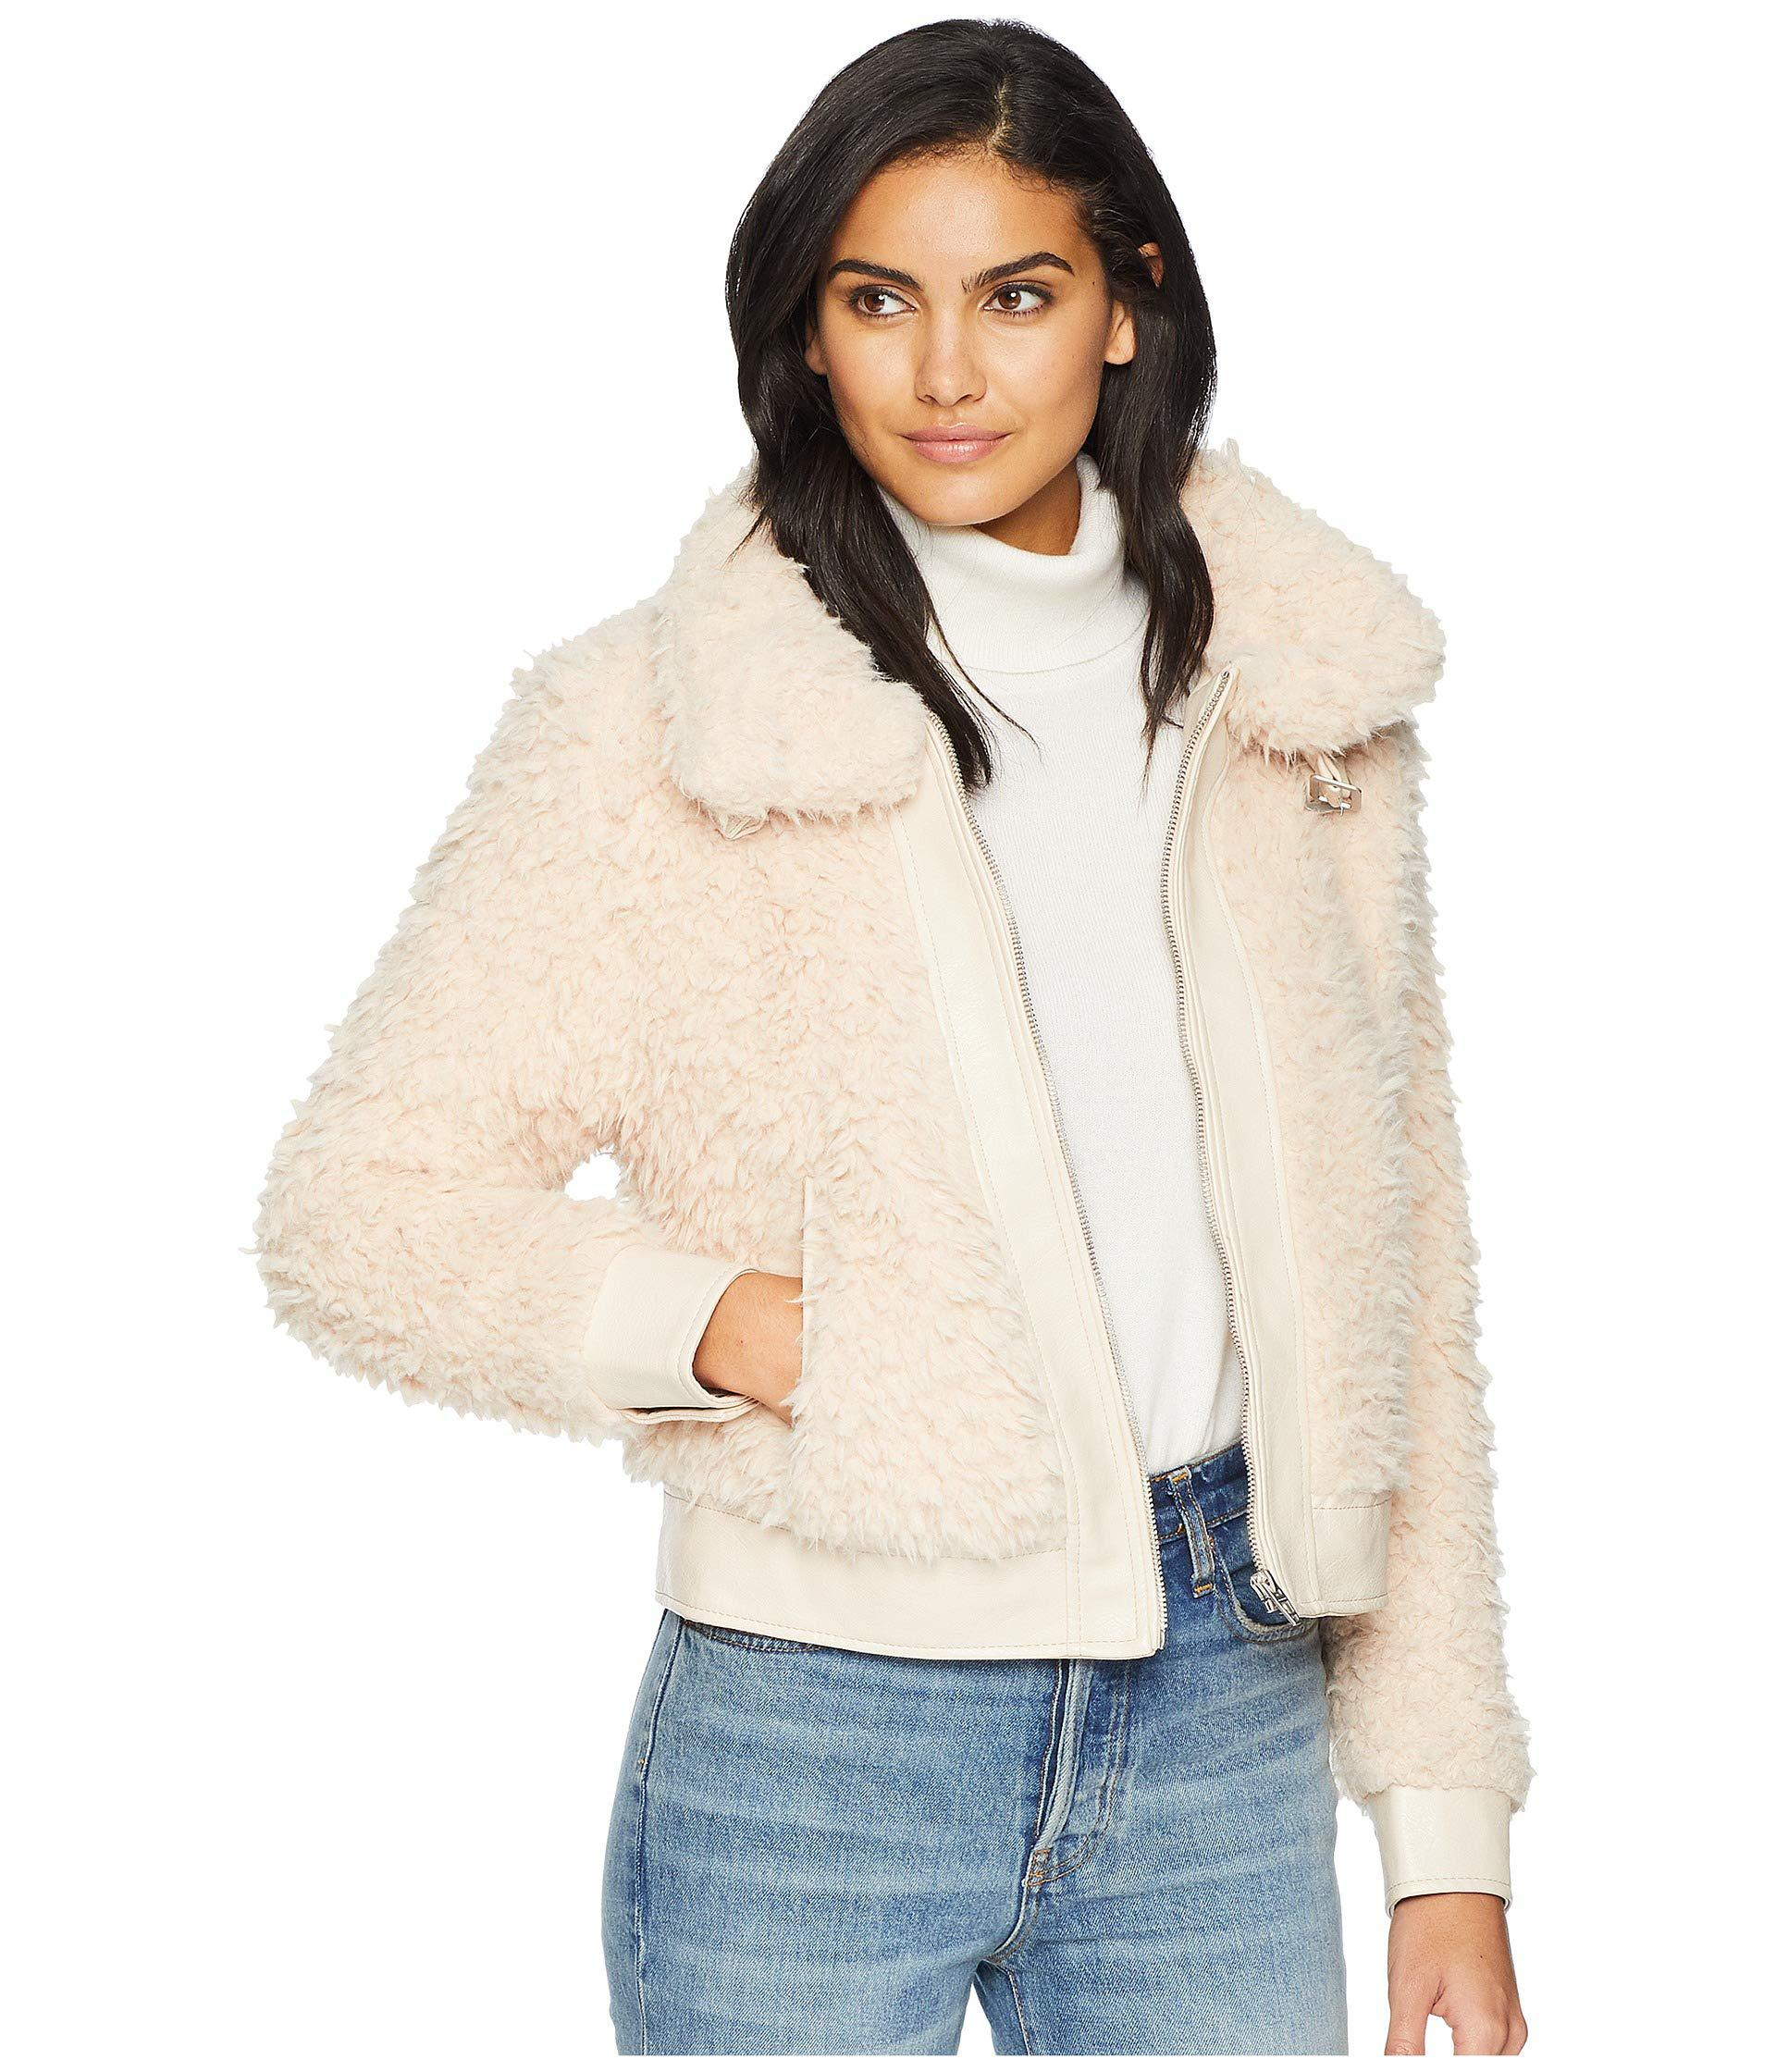 7f08cd8ef47 Tag Womens Coat With Faux Fur — waldon.protese-de-silicone.info